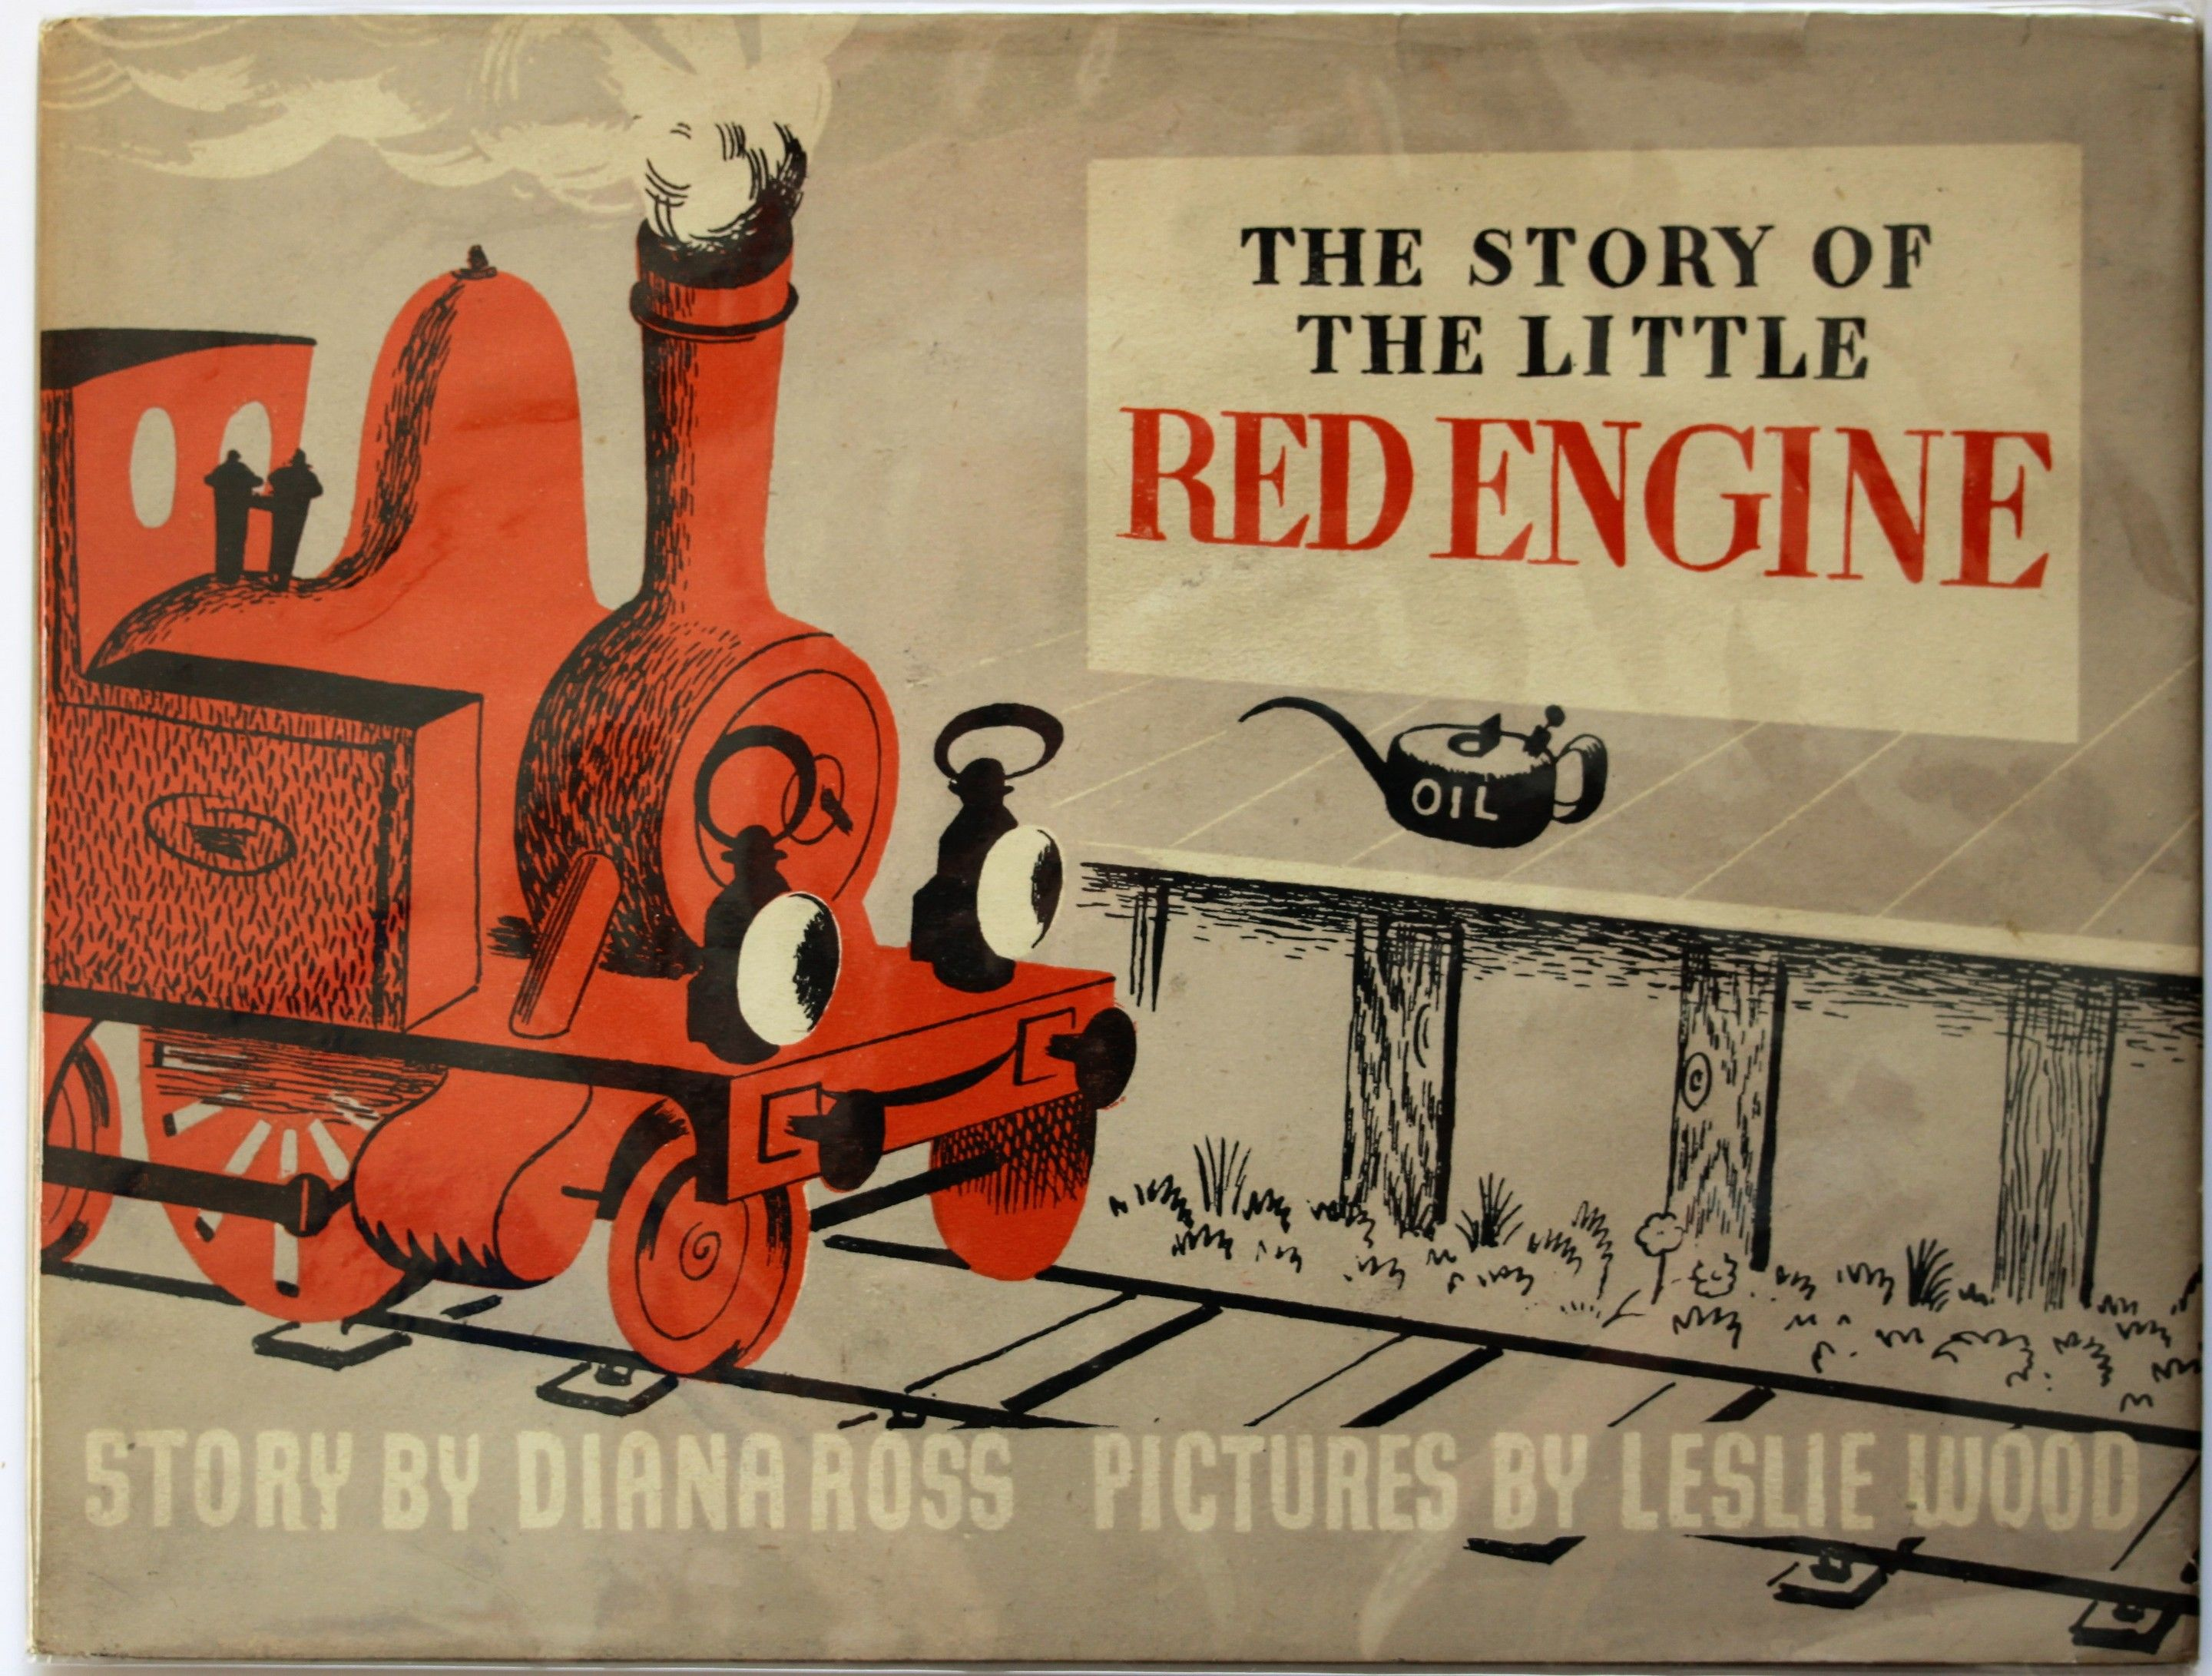 The Story Of The Little Red Engine Story By Diana